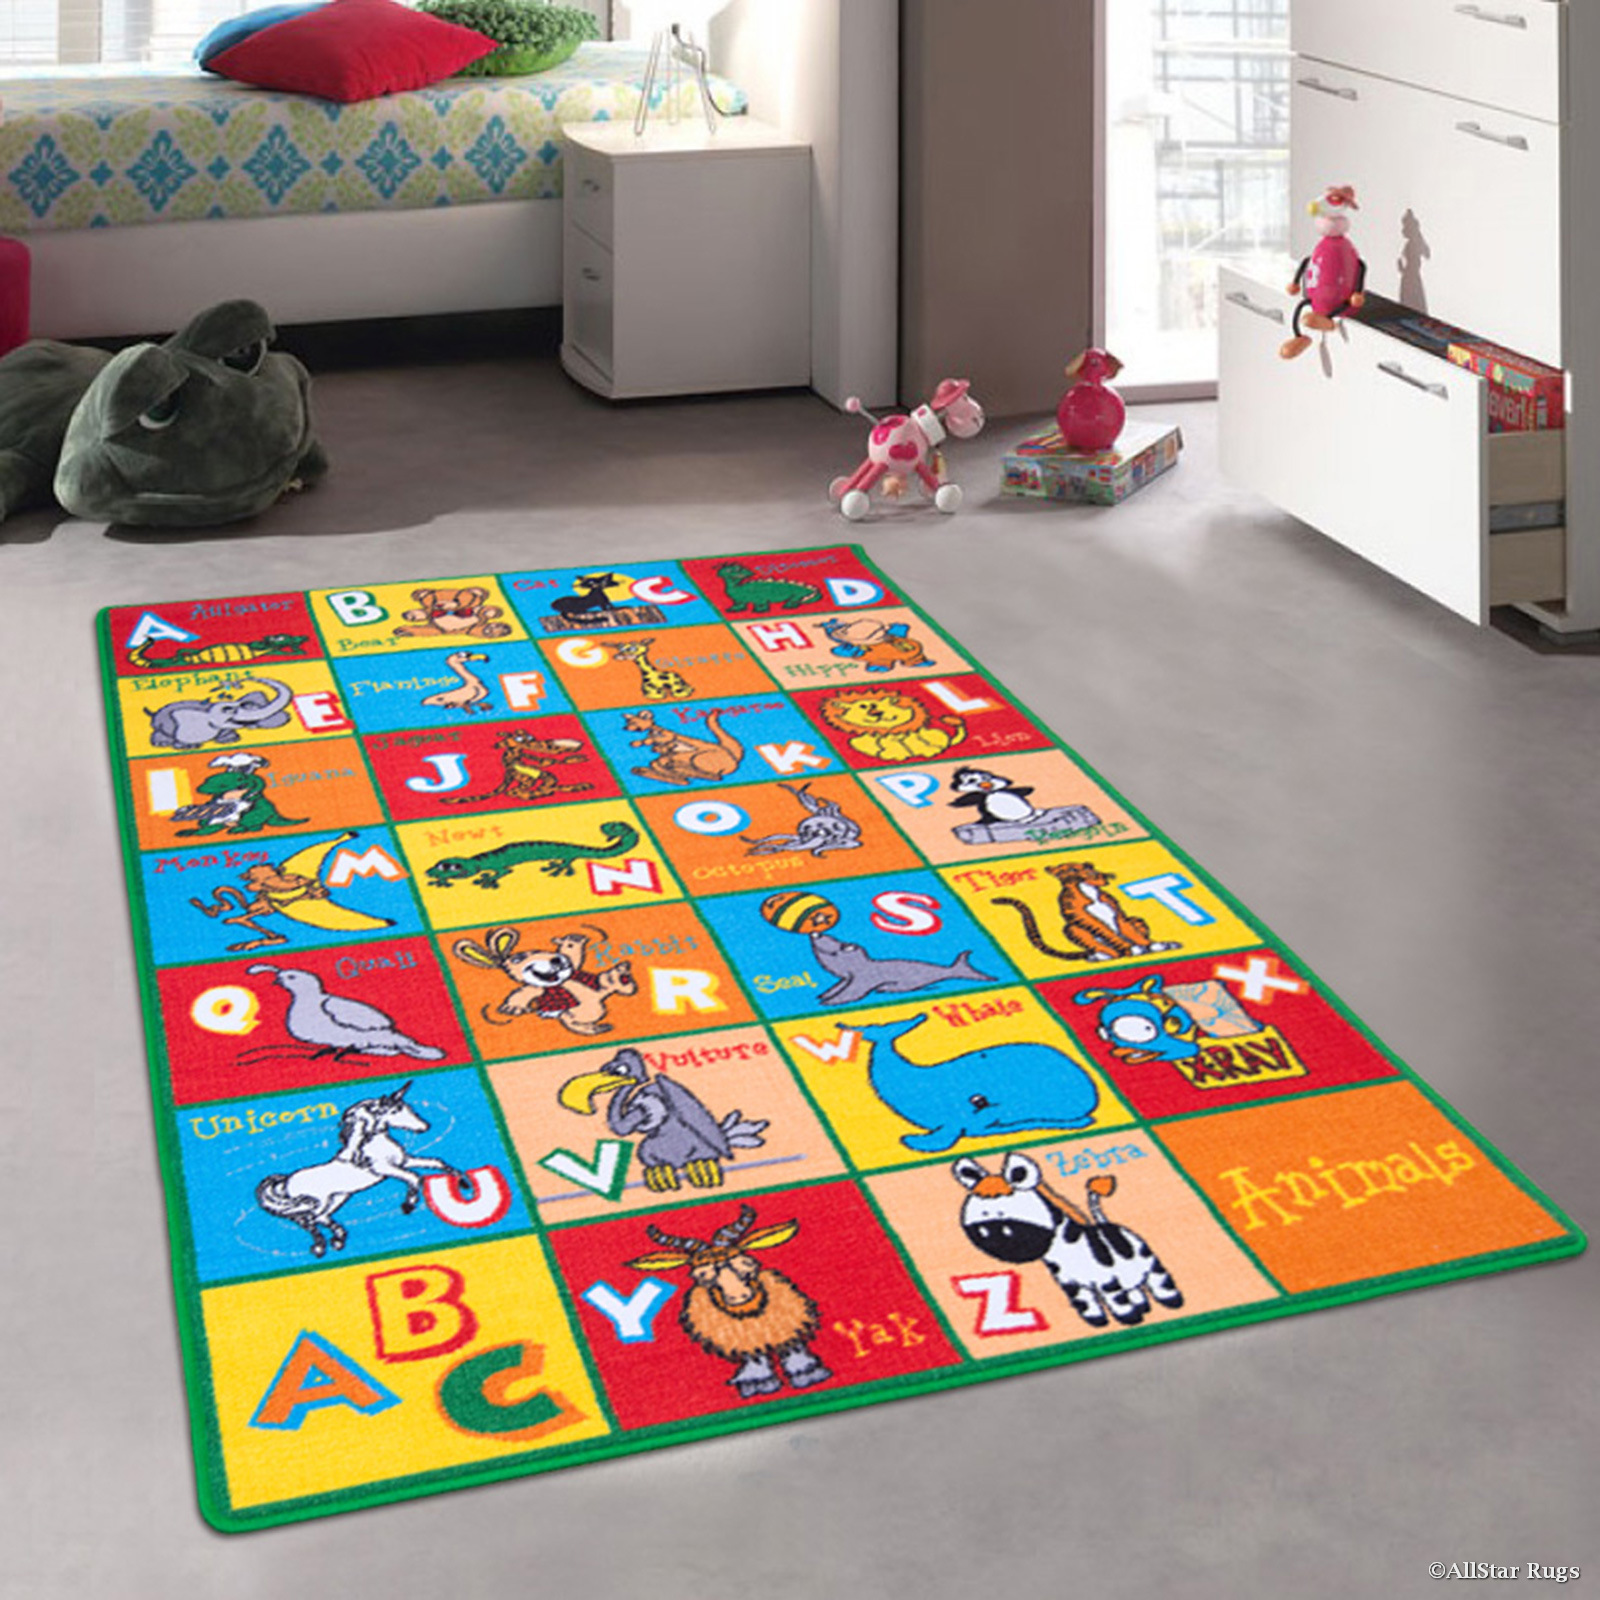 "Allstar Kids / Baby Room Area Rug. Learn ABC / Alphabet Letters with Animals Bright Colorful Vibrant Colors (4' 11"" x 6' 11"")"